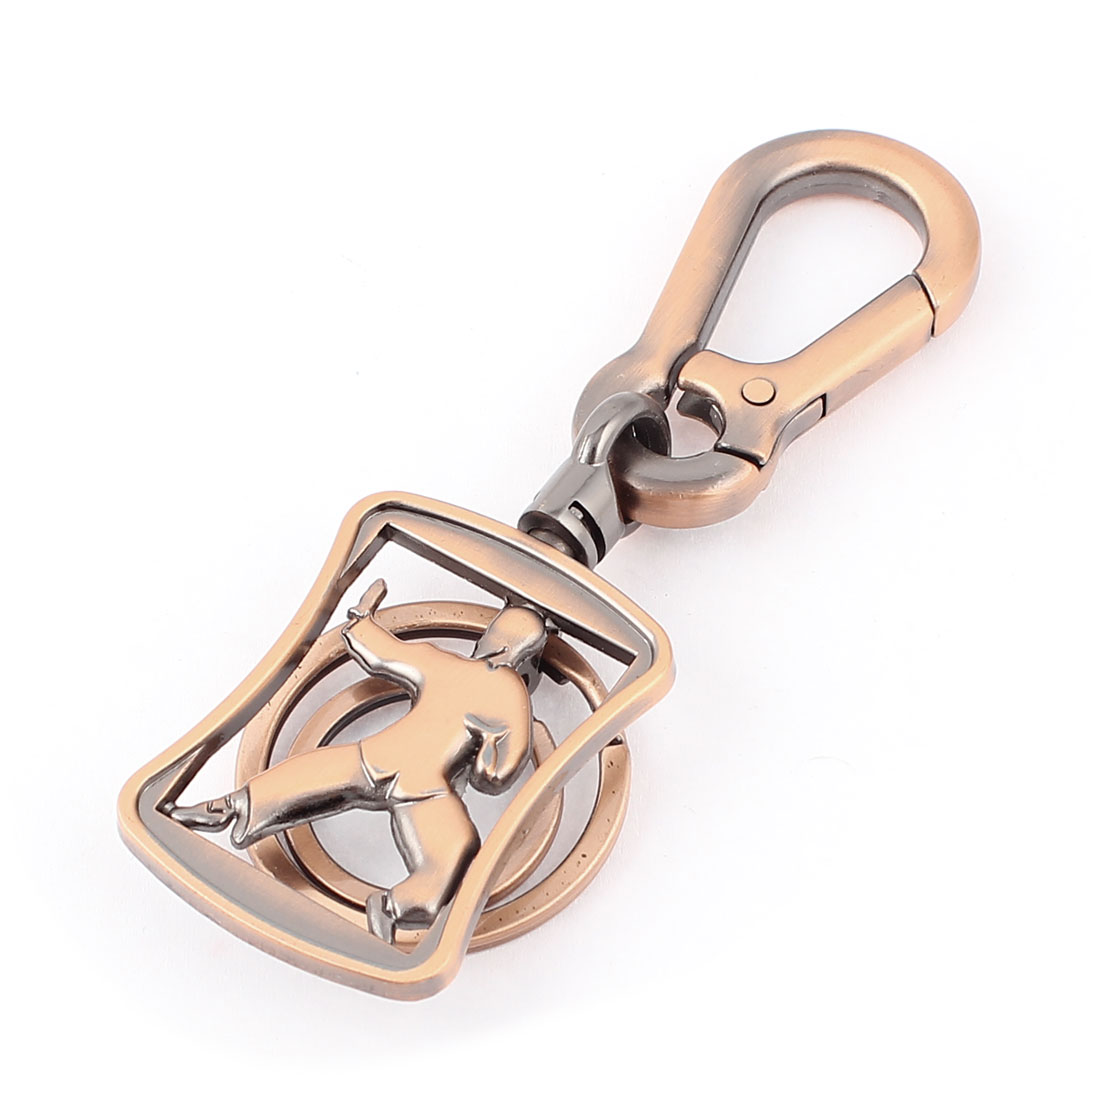 Kung Fu Character Lobster Clasp Keychain Keyring Brass Tone 11cm